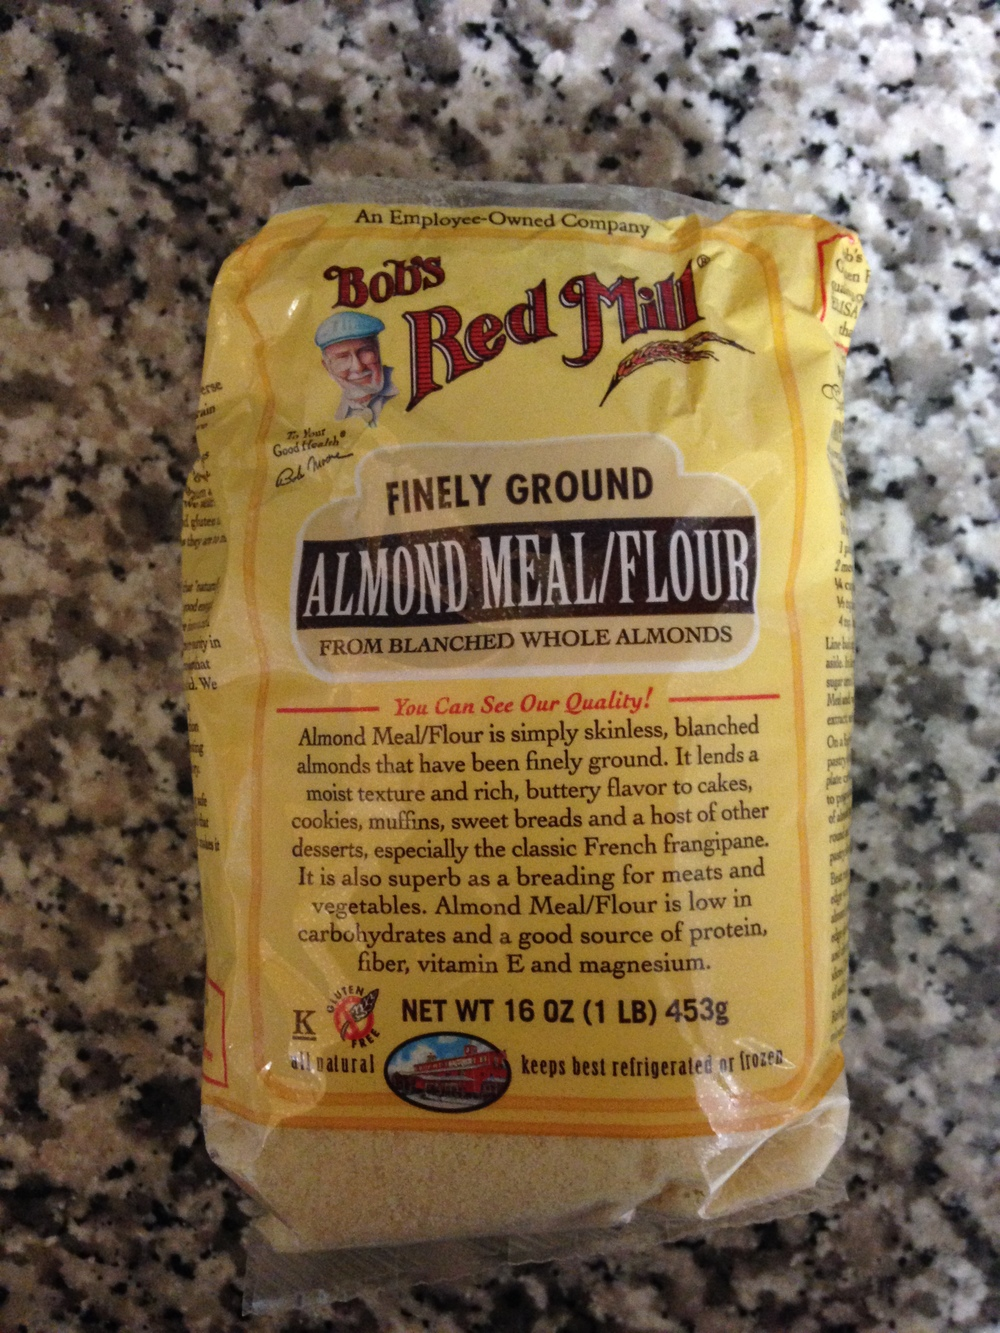 Almond meal/flour can be used as a low-carb, gluten-free alternative to bread crumbs and AP flour.